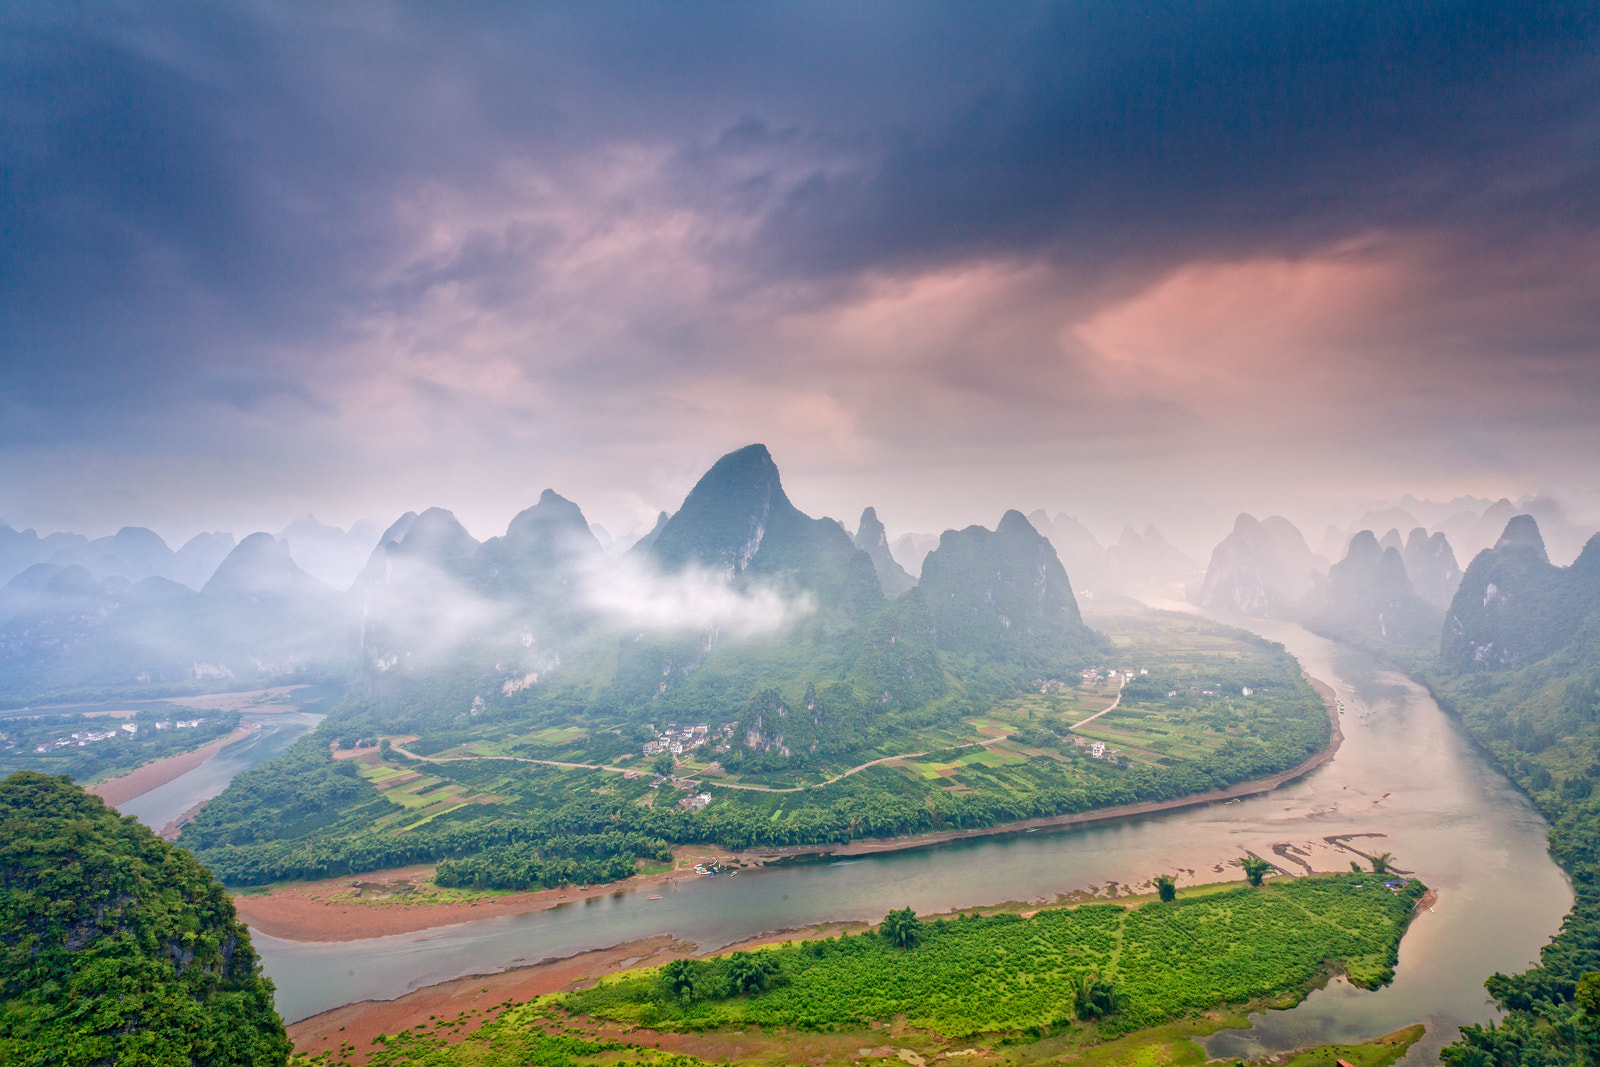 Photograph Moody Morning by Helminadia Ranford on 500px